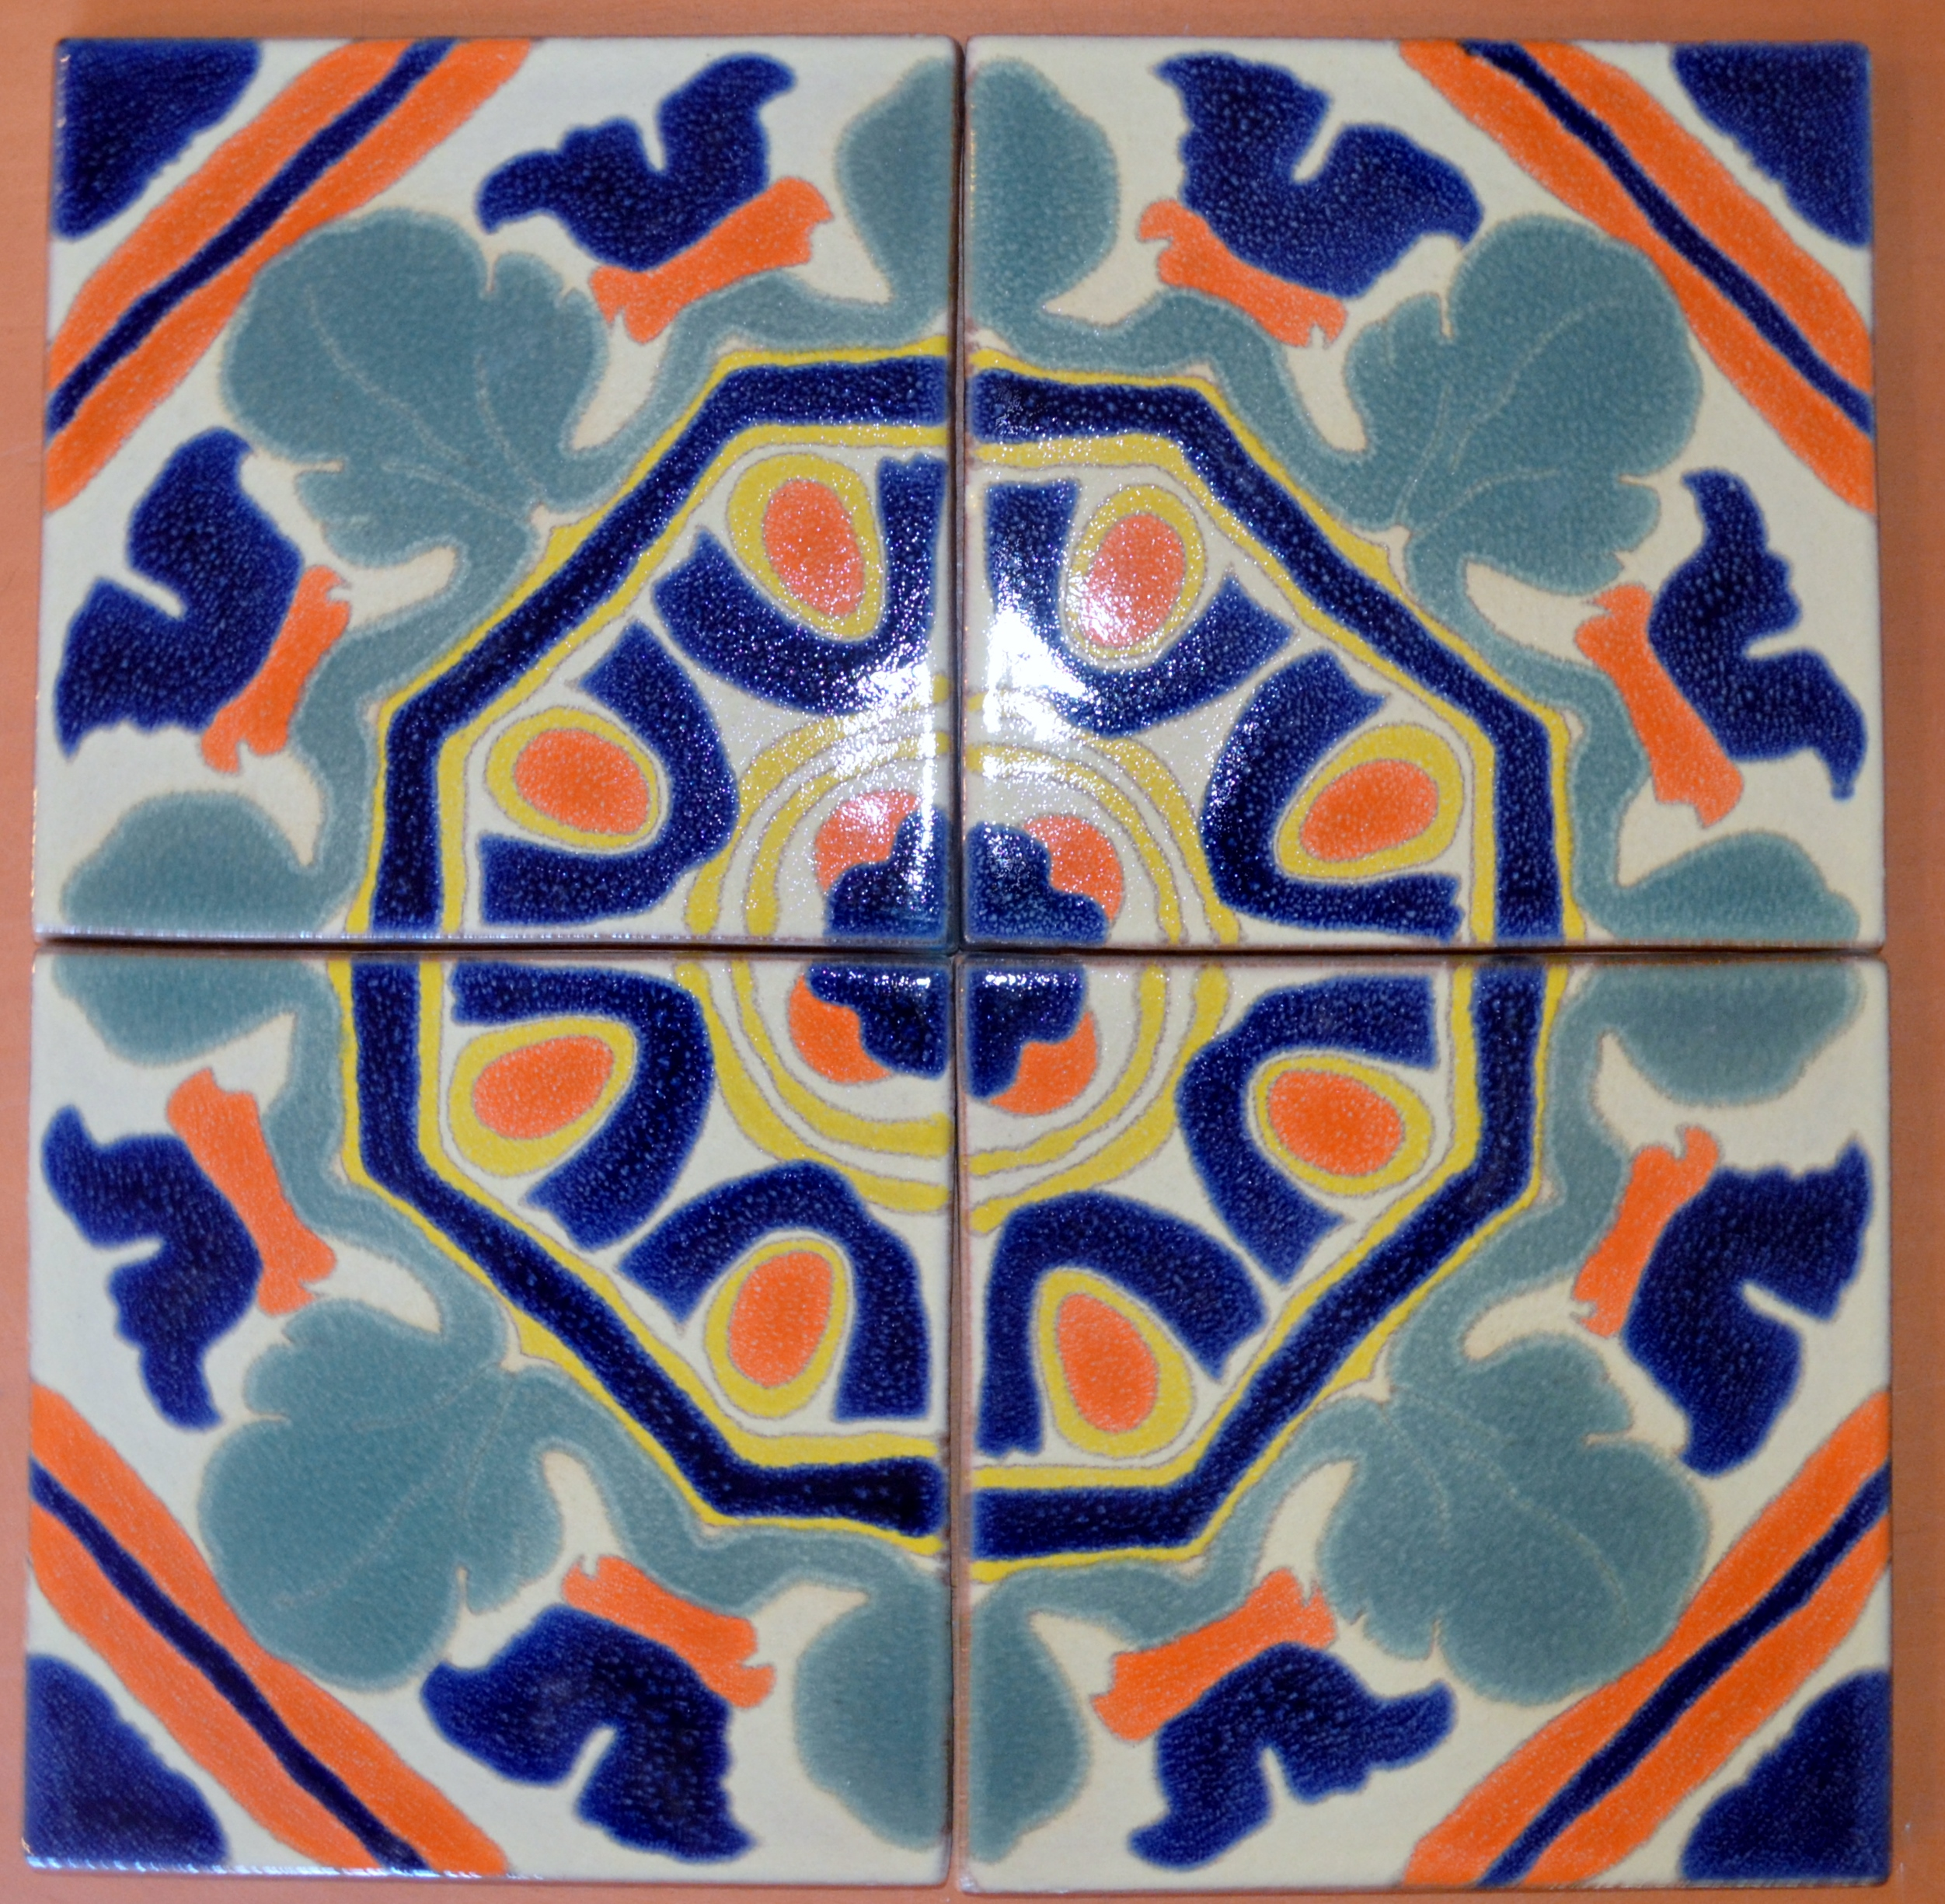 File:This 4-tile pattern illustrates very well the patterns of Hispano-Moresque